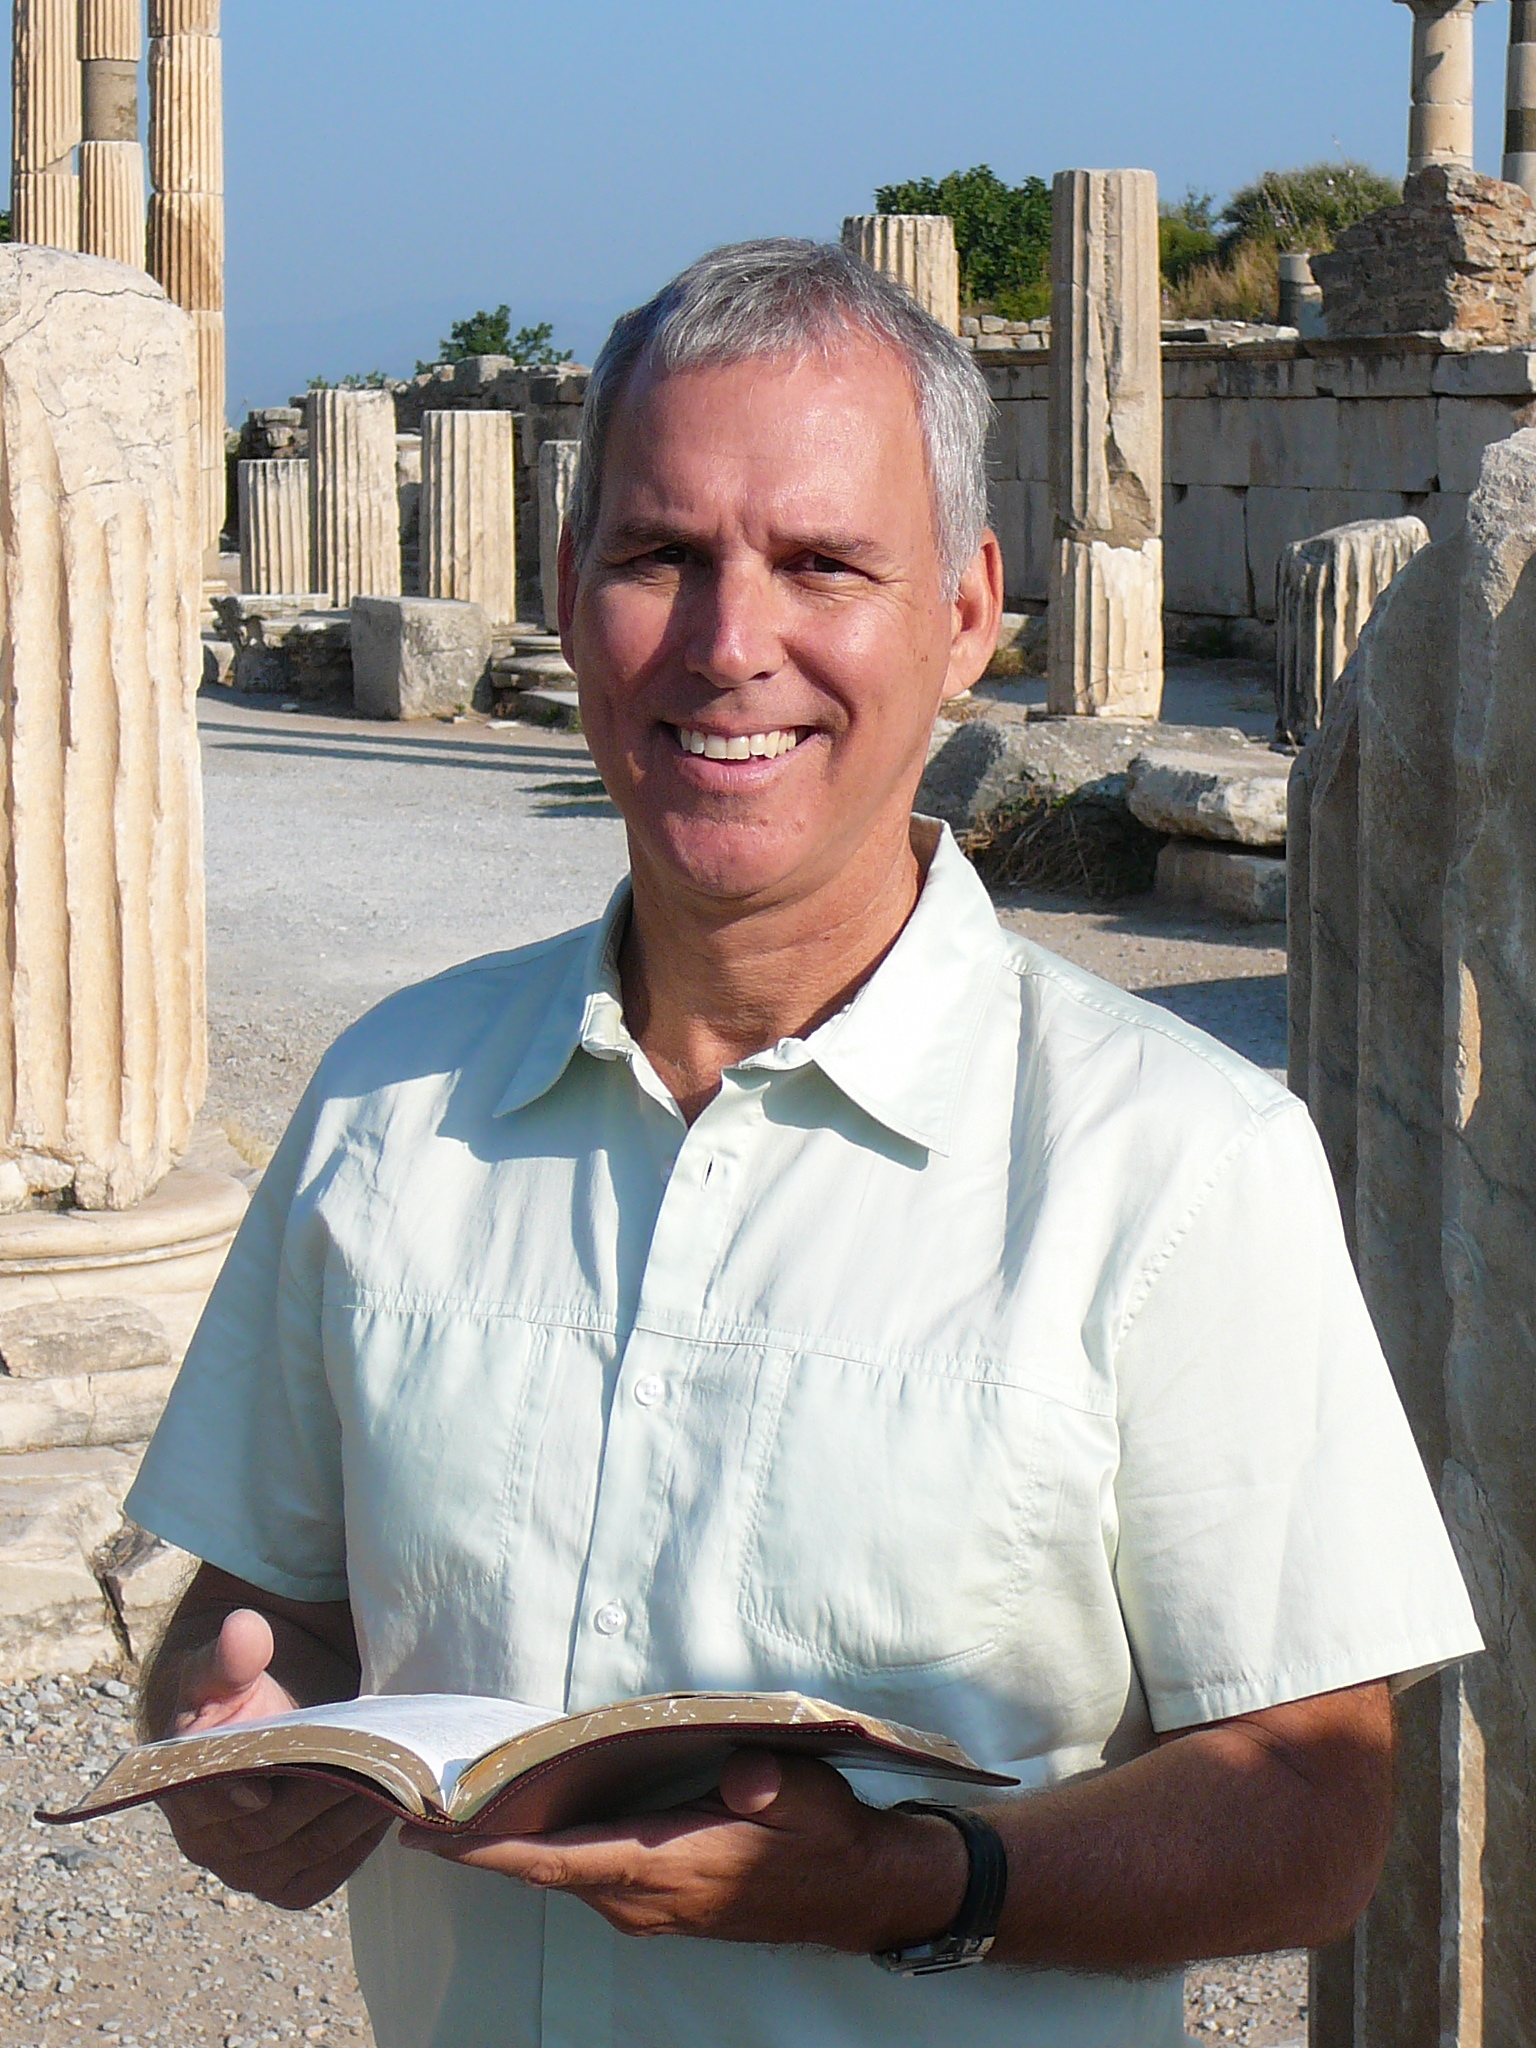 rev. dr. david sparks reads god's word in delphi